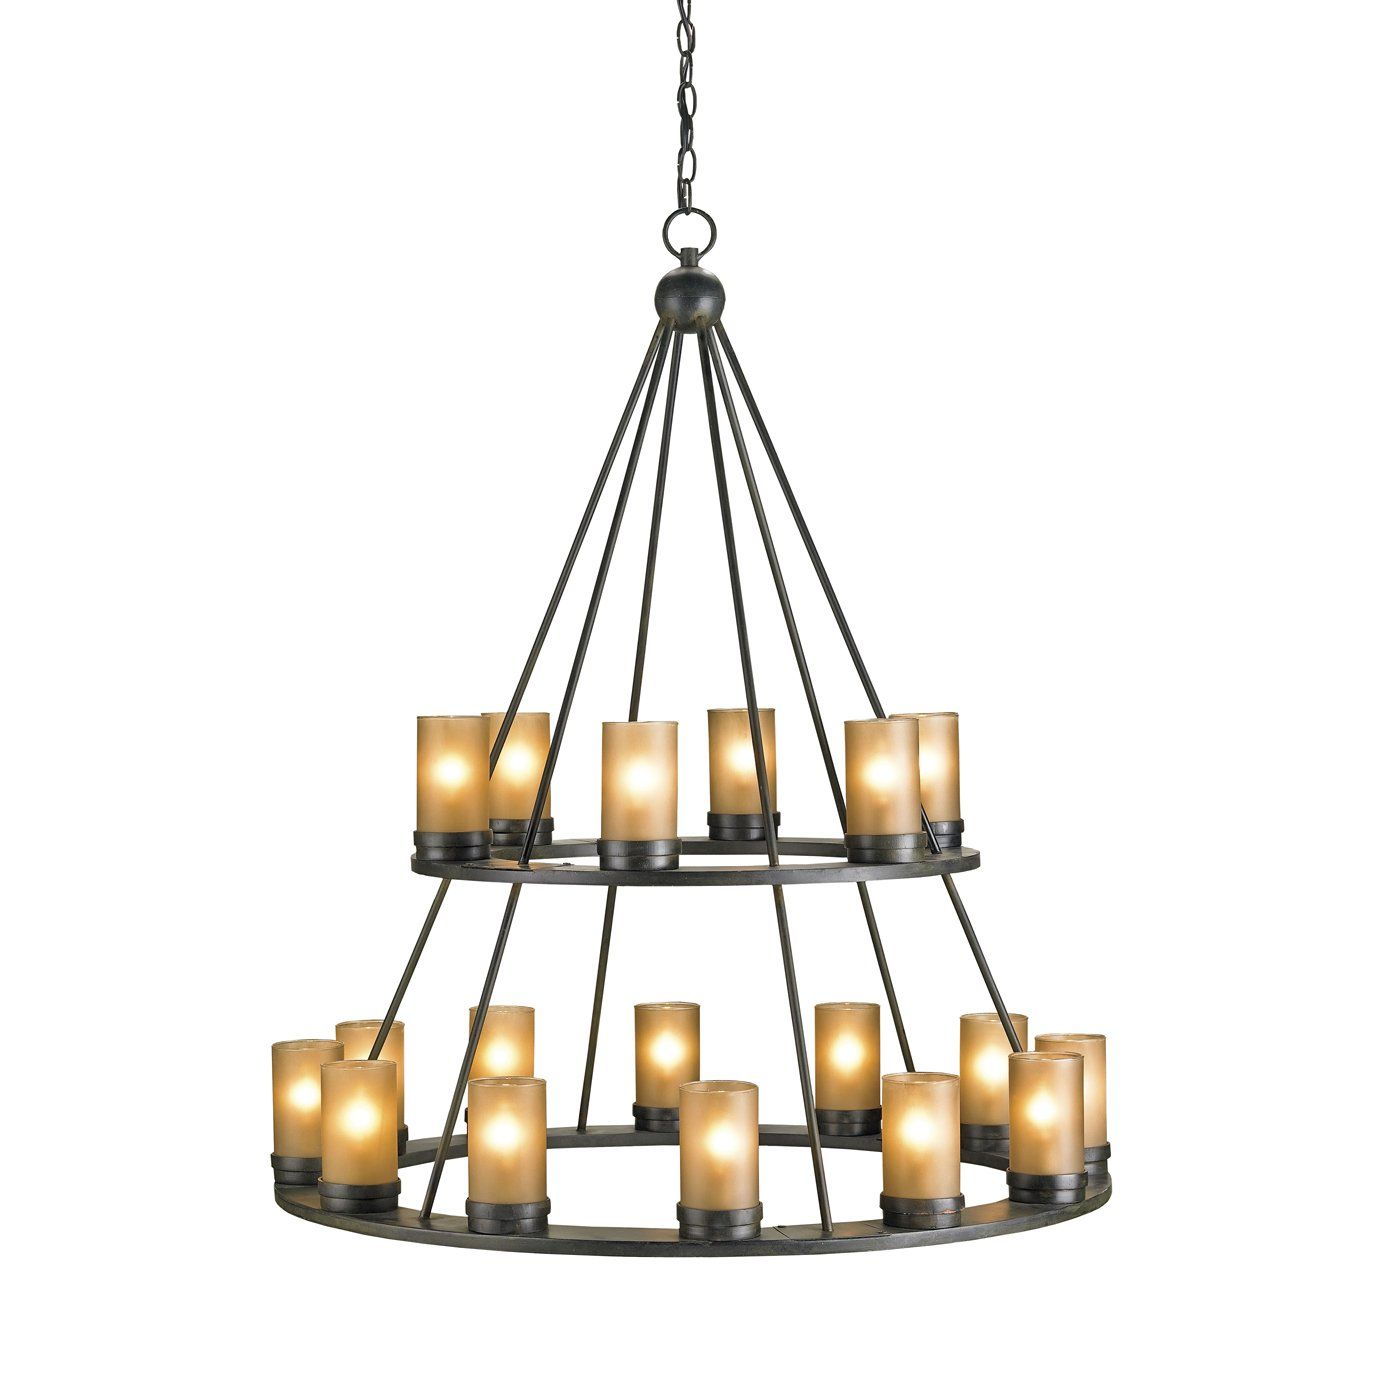 Currey & pany 9077 18 Light Darden Chandelier